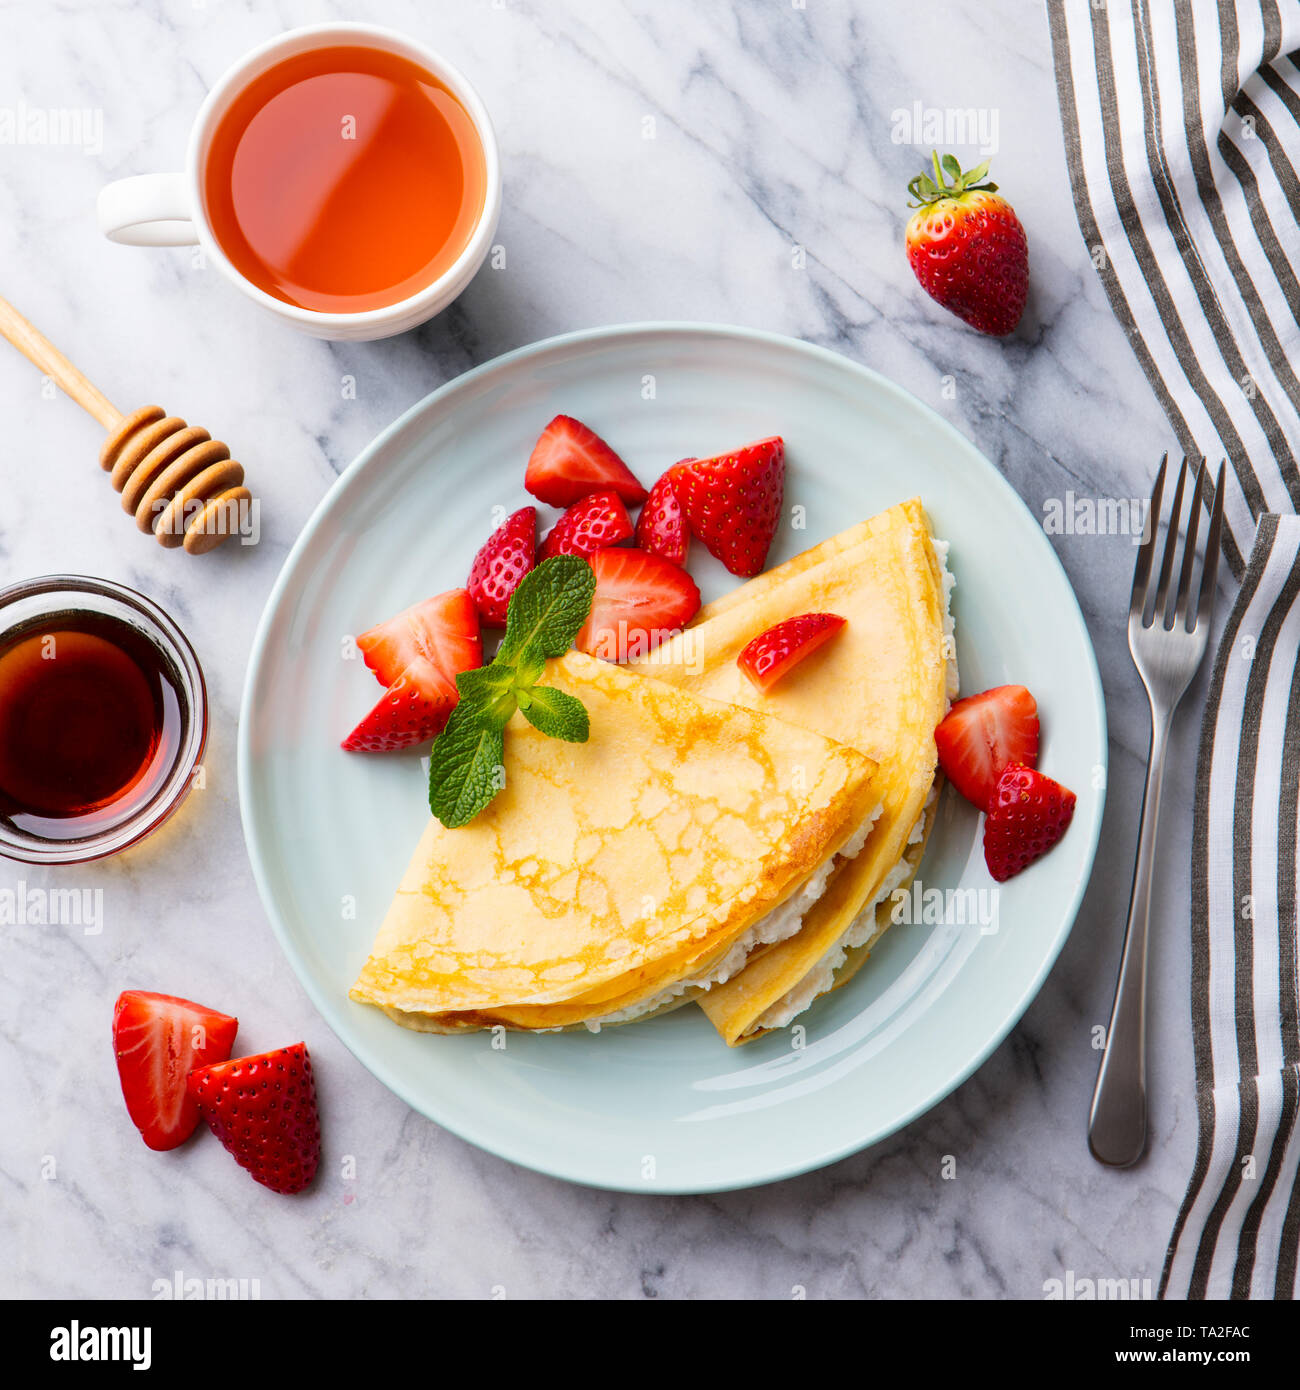 Crepes, thin pancakes with cream cheese, ricotta and fresh strawberries. Marble background. Top view. - Stock Image